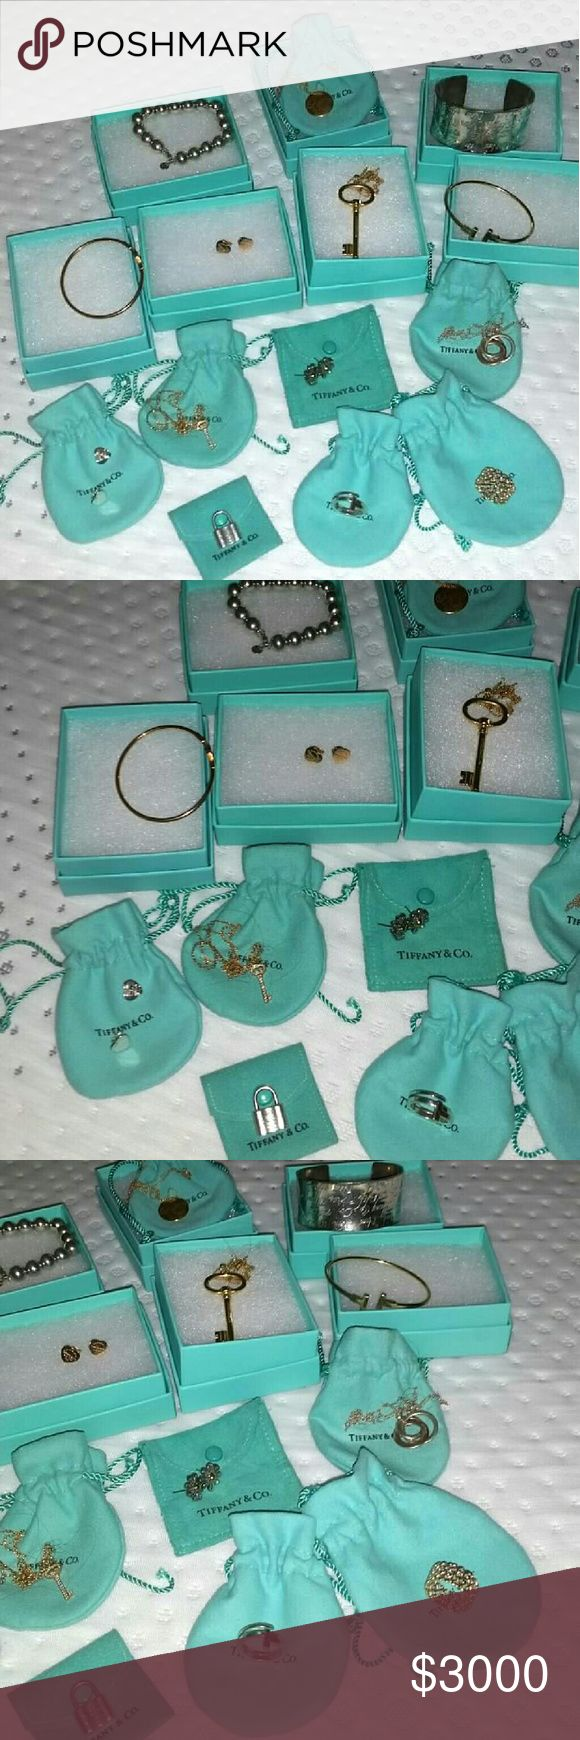 DON'T PURCHASE THIS LISTING - Tiffany & co jewelry Baby #2 is on the way, so I will be parting with some of my T jewelry.  All the silver & few selected gold items. Not all are pictured. Some pictured not for sale I will be listing shortly - -18k & silver daisy earrings  -Notes cuff -3 circle silver & rose gold pendant  -18k diamond encrusted key -lock charm  -bead bracelet  -T ring -18k heart tag earrings  I have more to go through.   I had to delete my previous account due to a psycho, but…